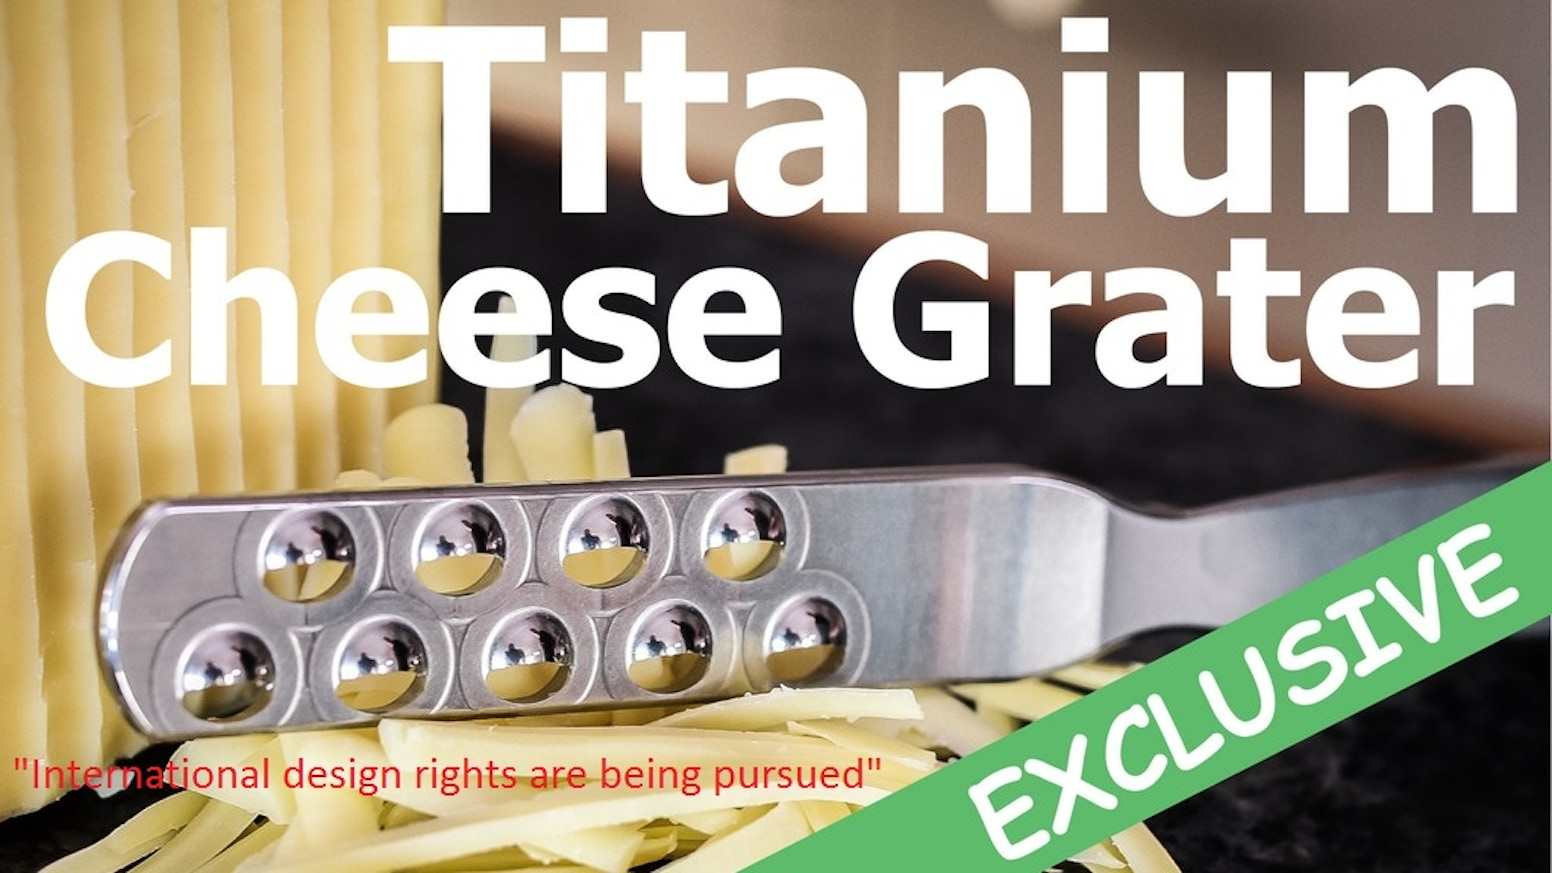 A *SAFER* Way To Grate! The Greatest Development In Cheese Grating In 470 Years! Fully Titanium and Built To Last a LIFETIME...